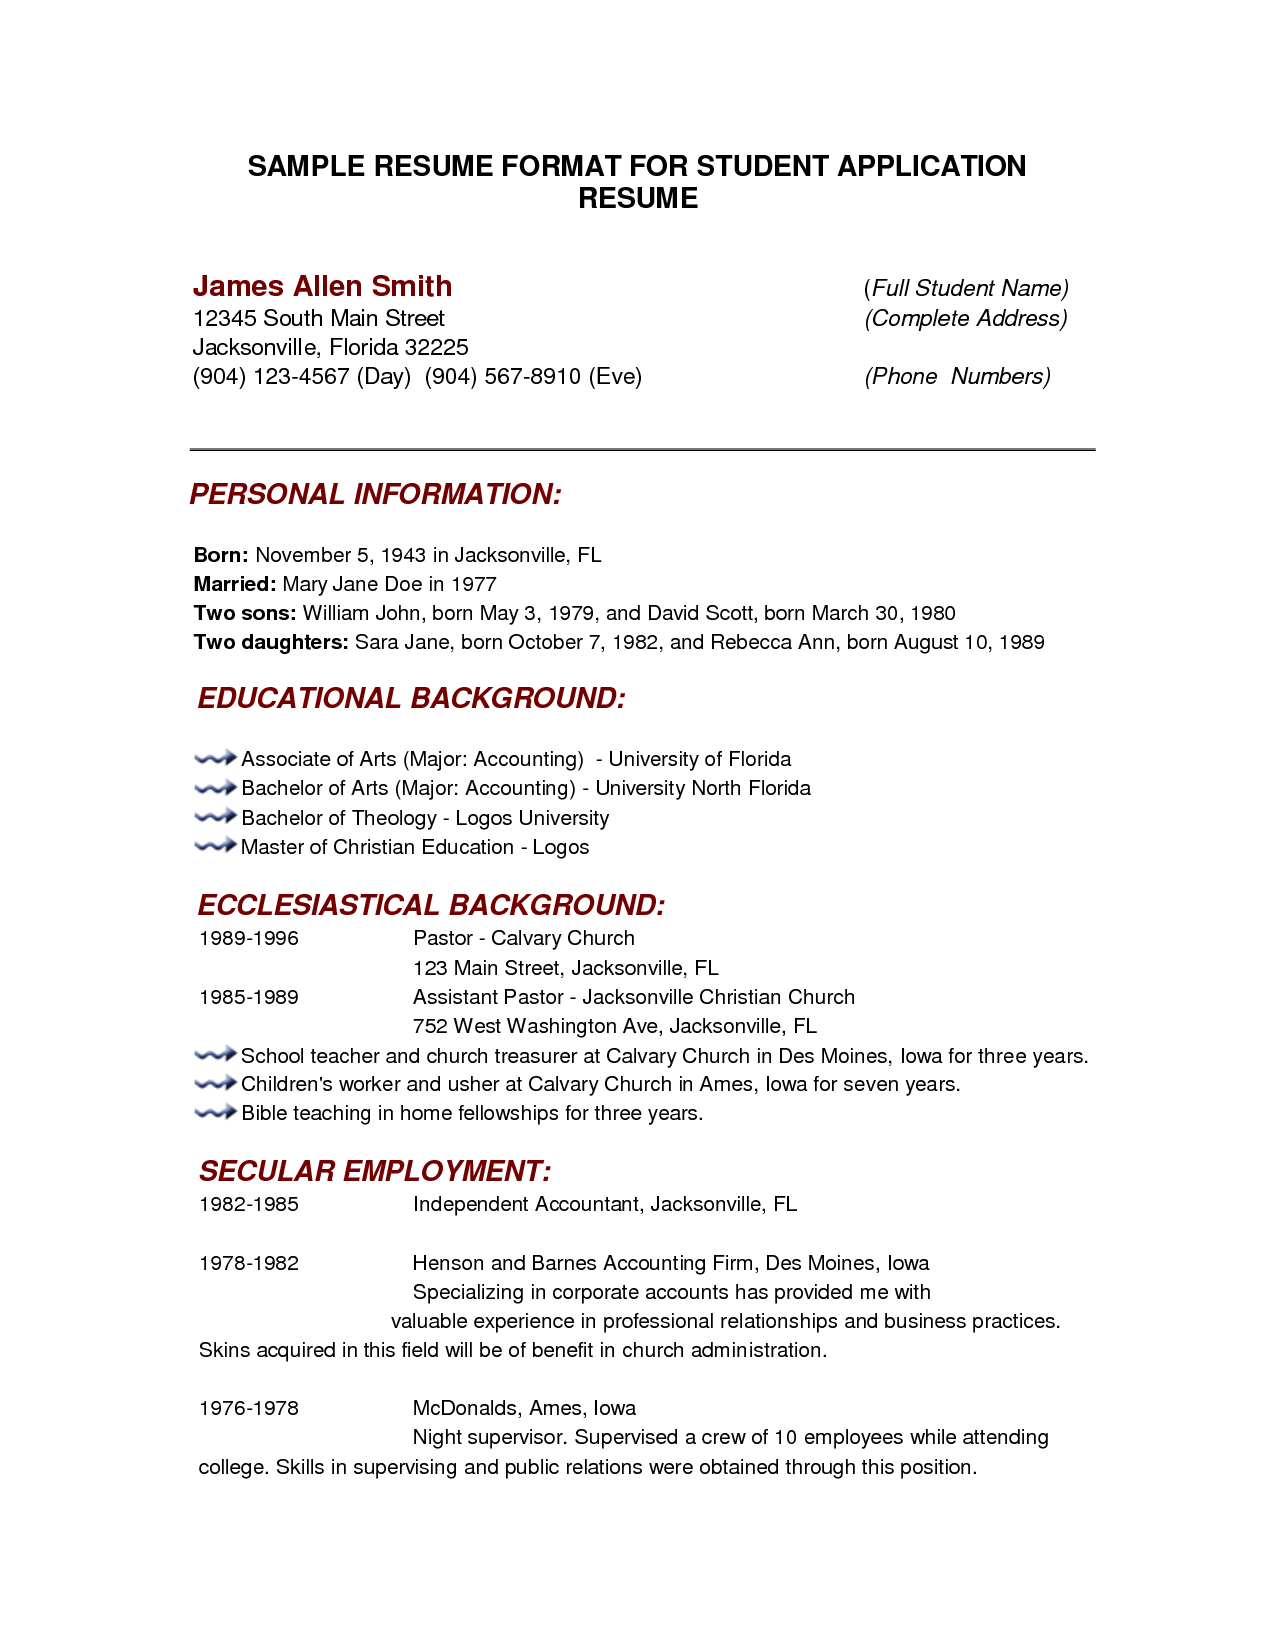 Resume Template For College Students o